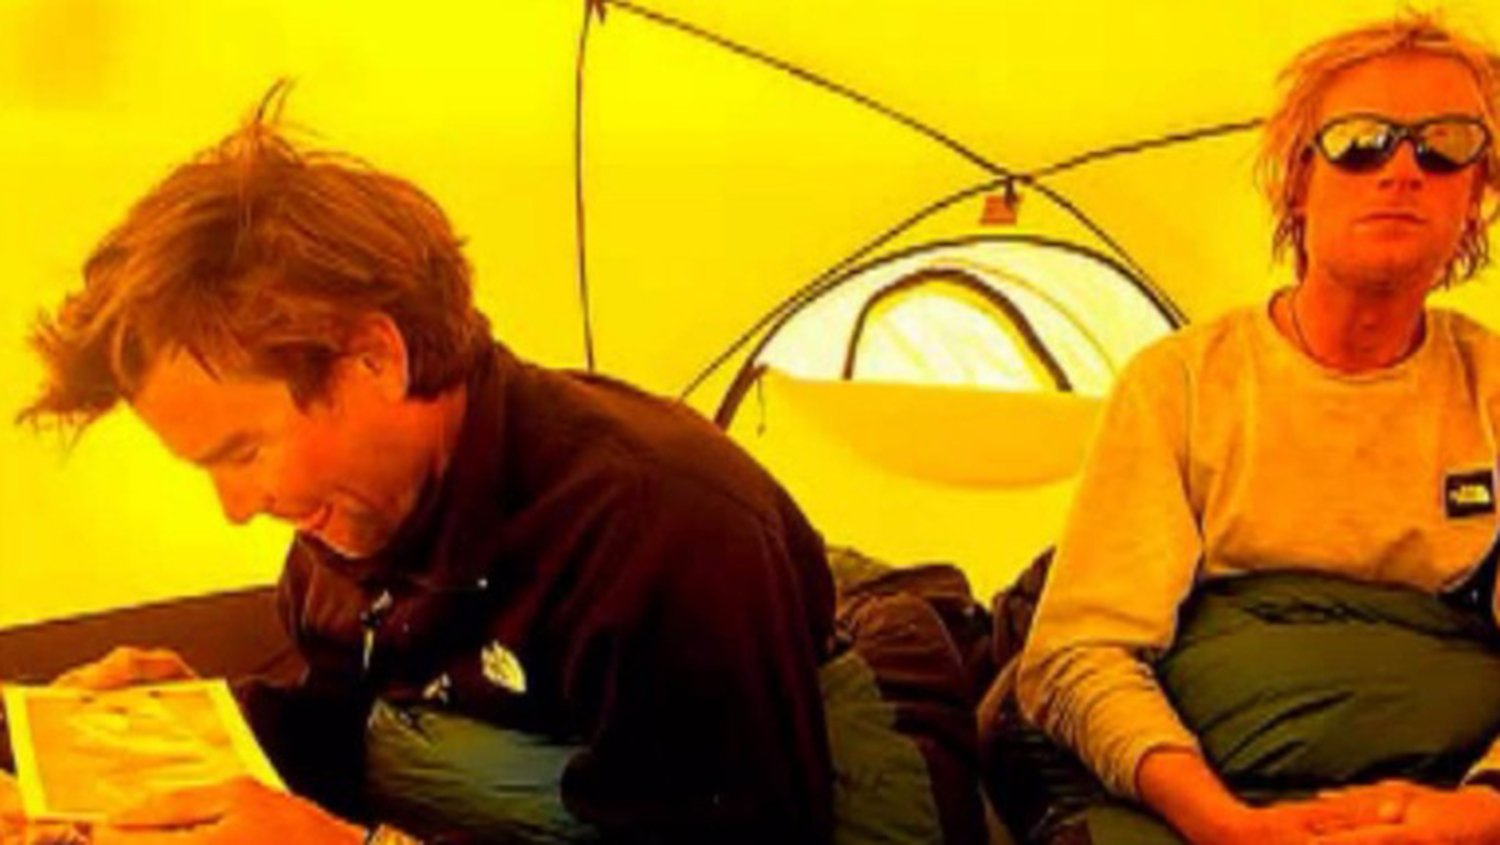 Bodies of Climbers Alex Lowe and David Bridges Found in Tibet 16 Years After Perishing in Avalanche